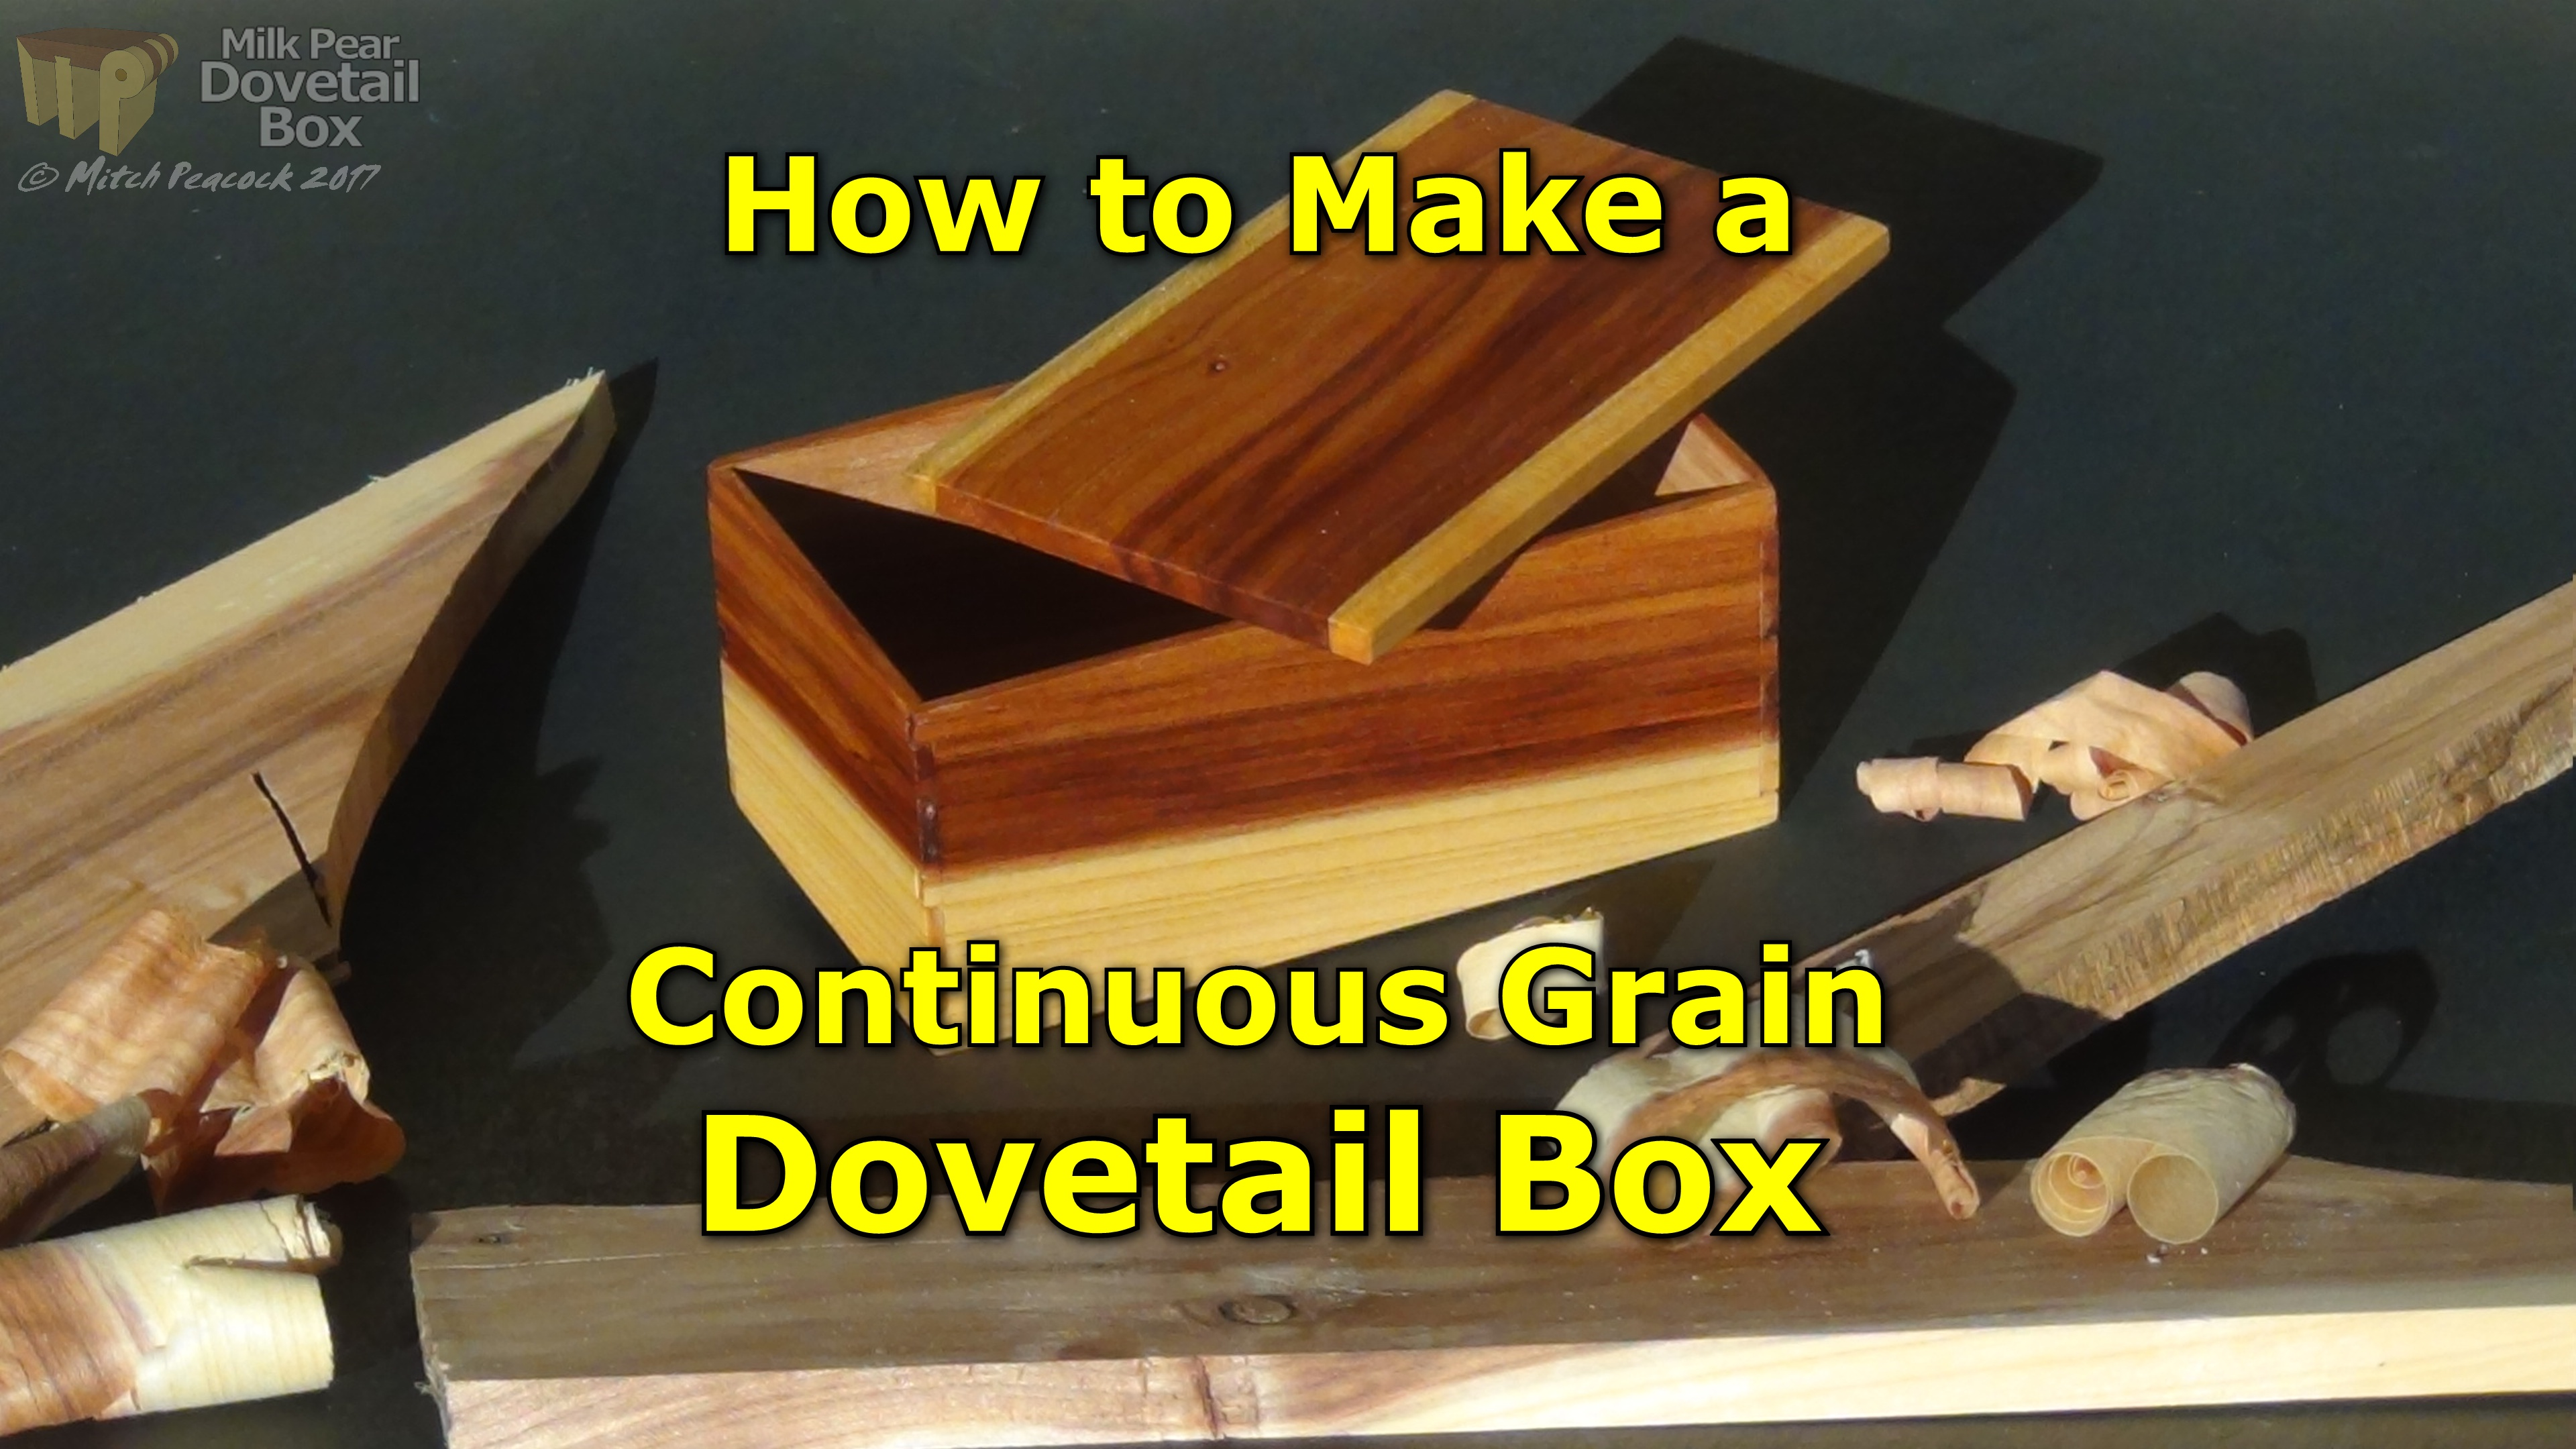 Picture of Continuous Grain Dovetail Box - a Great Gift Idea